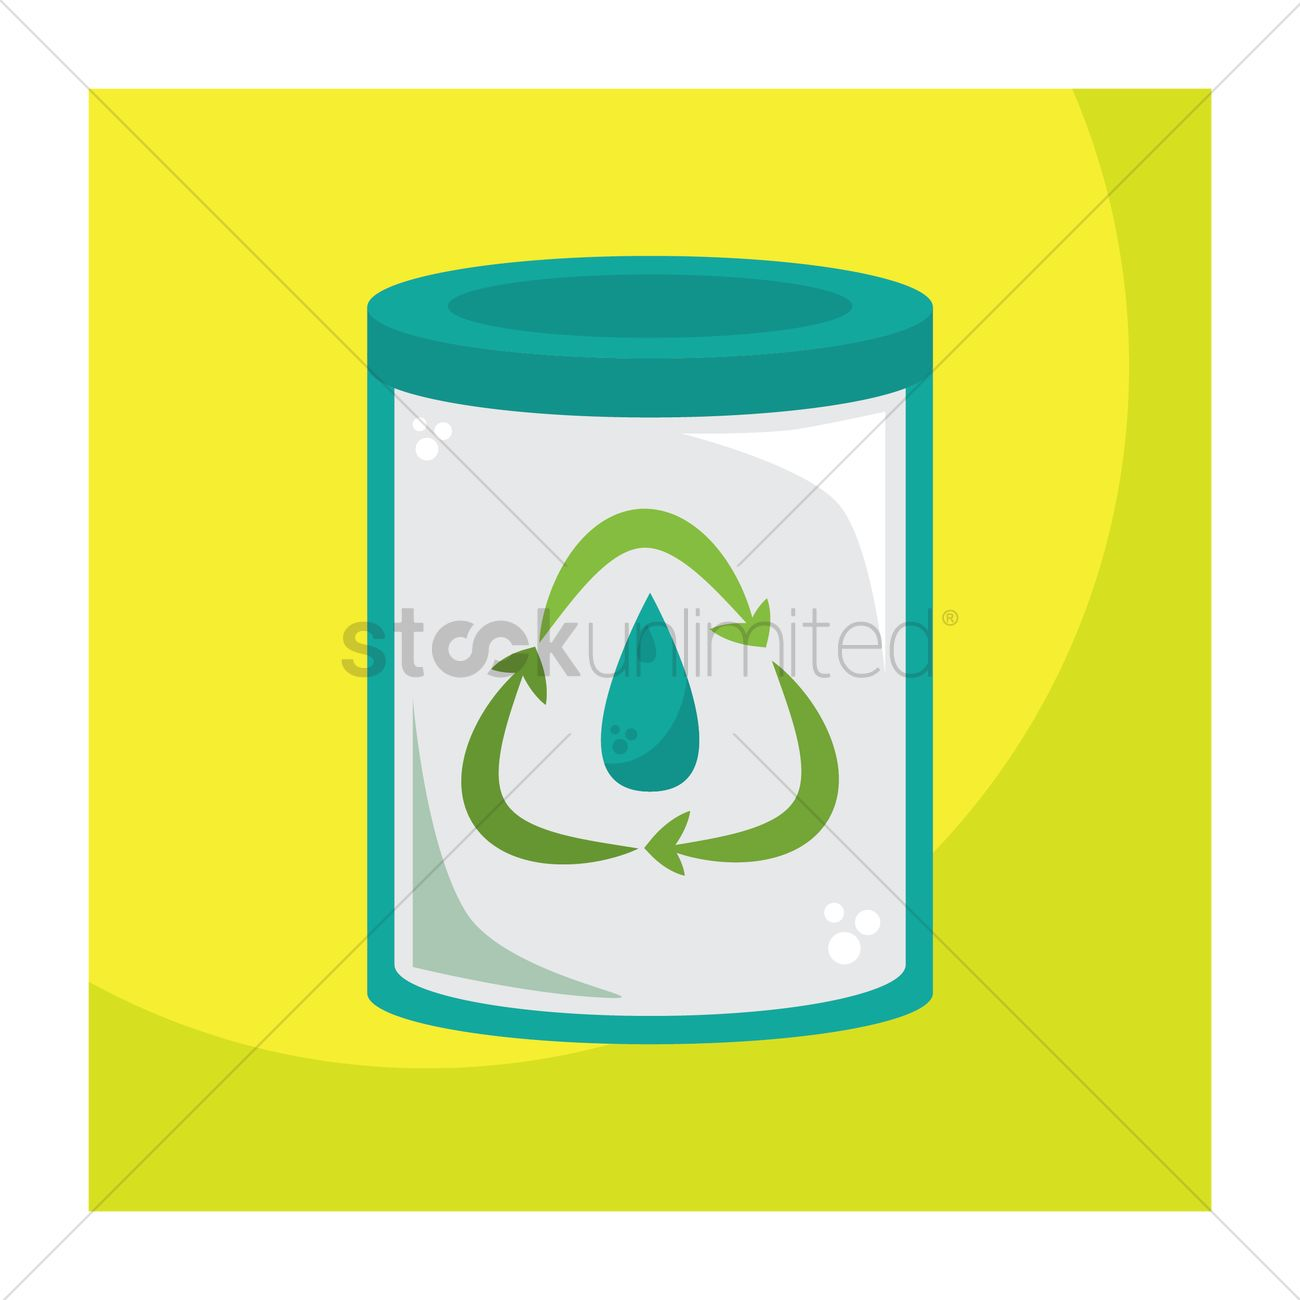 Recycle Symbol With Water Drop On Glass Jar Vector Image 1648340